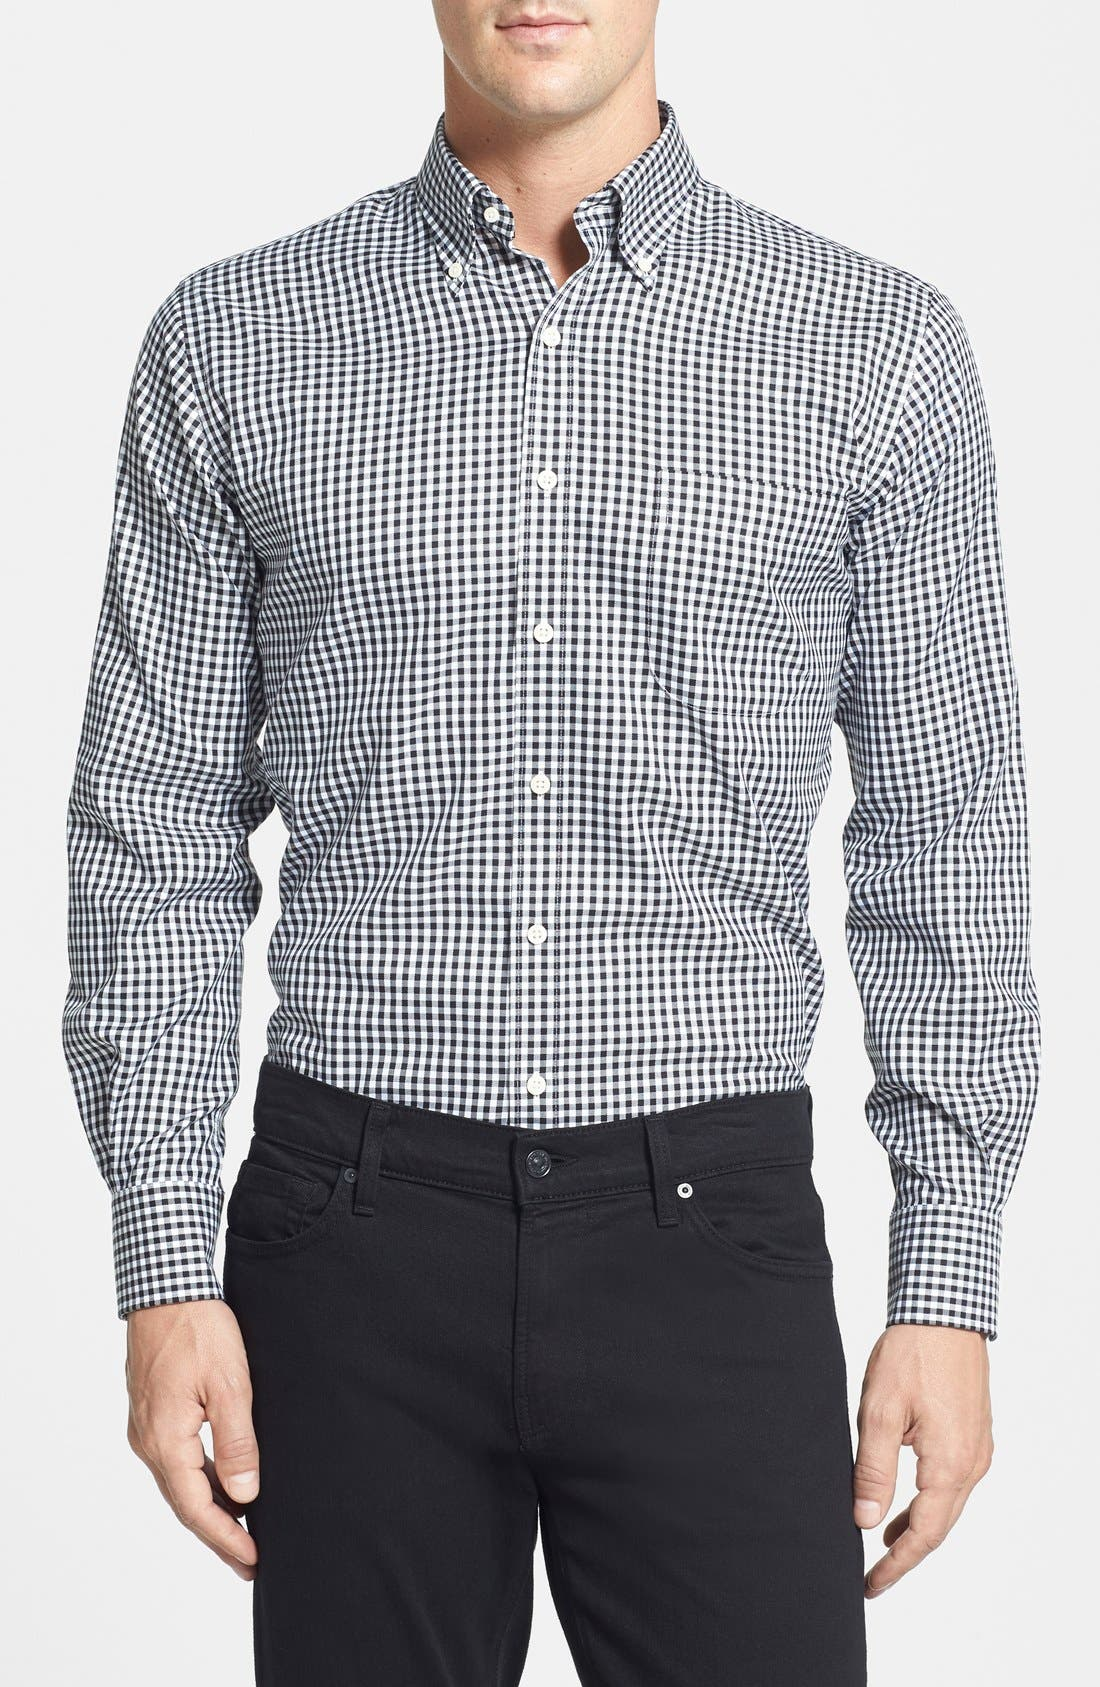 'Nanoluxe' Regular Fit Wrinkle Resistant Twill Check Sport Shirt,                             Main thumbnail 1, color,                             001